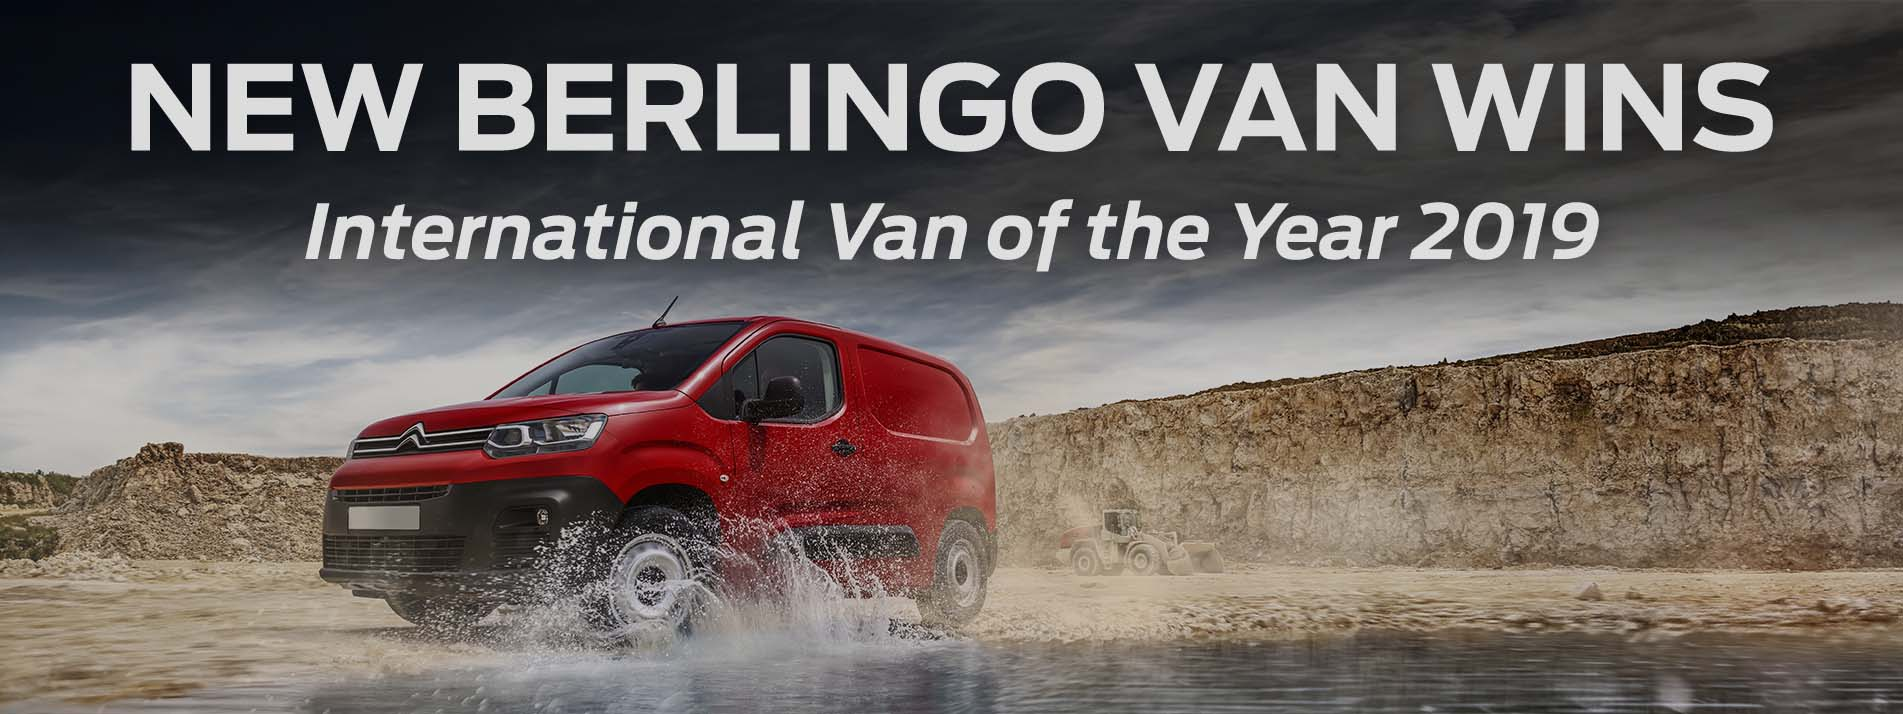 new-berlingo-van-wins-international-van-of-the-year-2019-m-sli